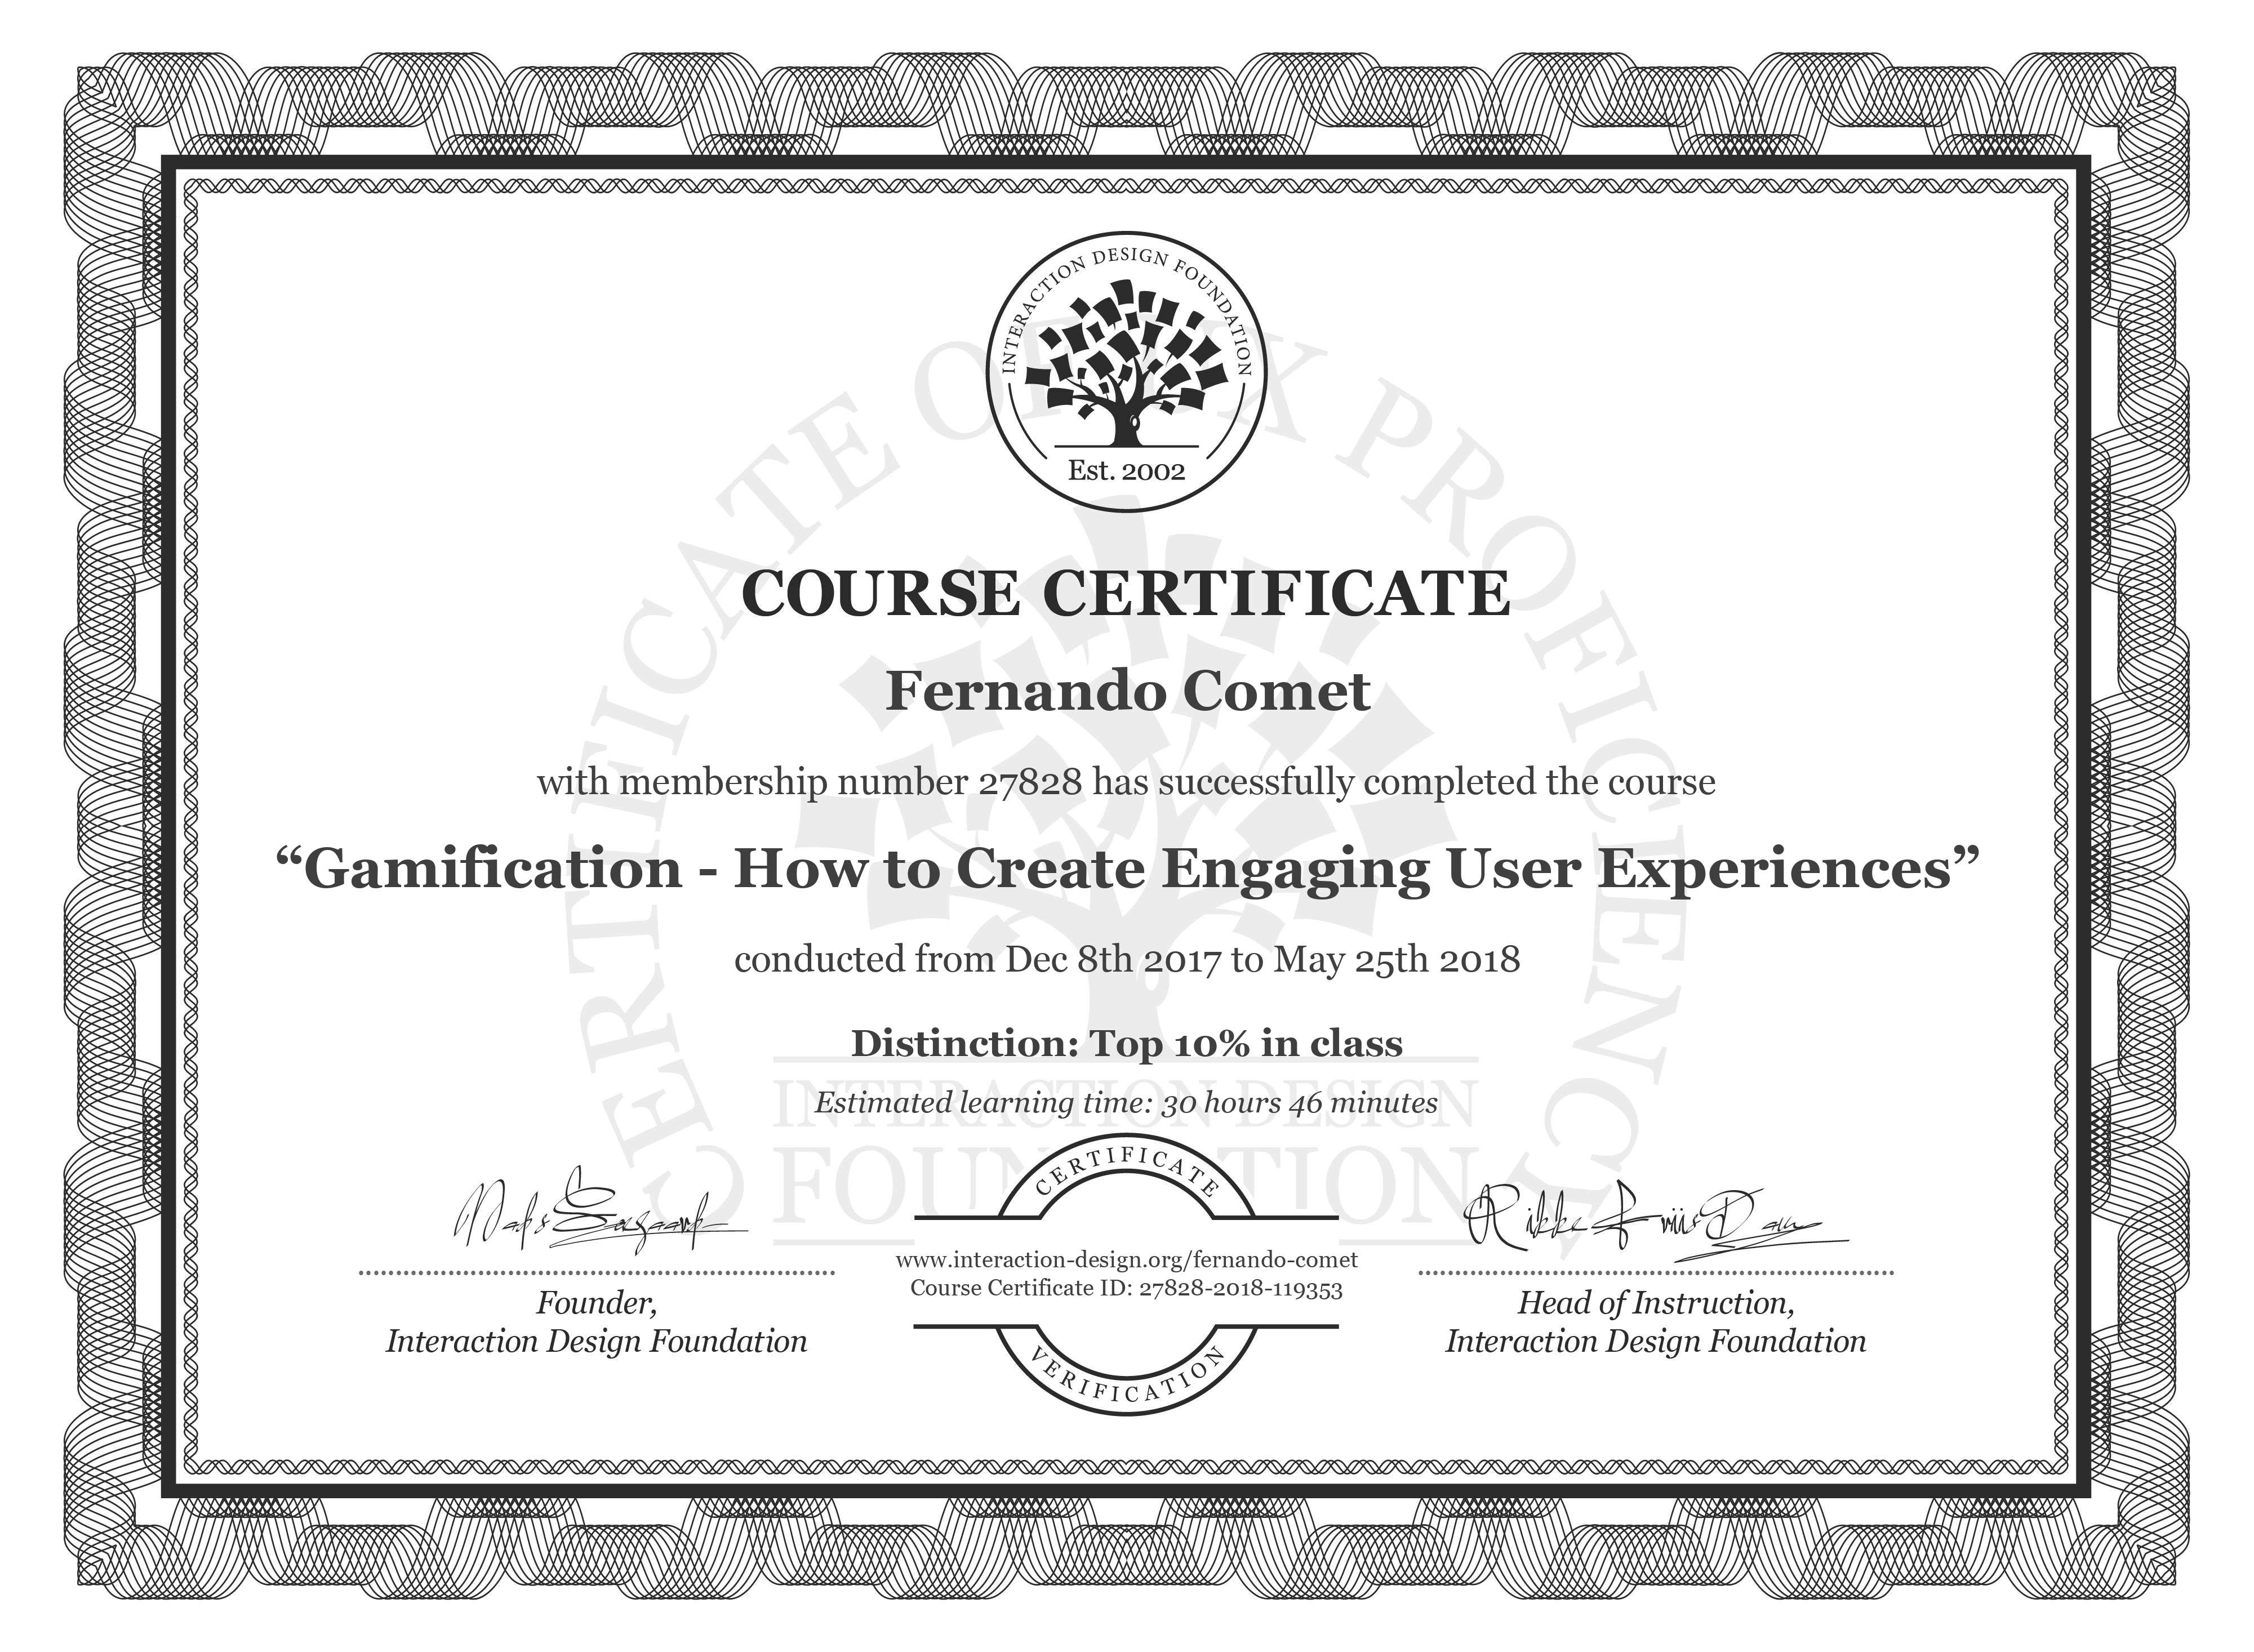 Fernando Comet: Course Certificate - Gamification – Creating Addictive User Experiences